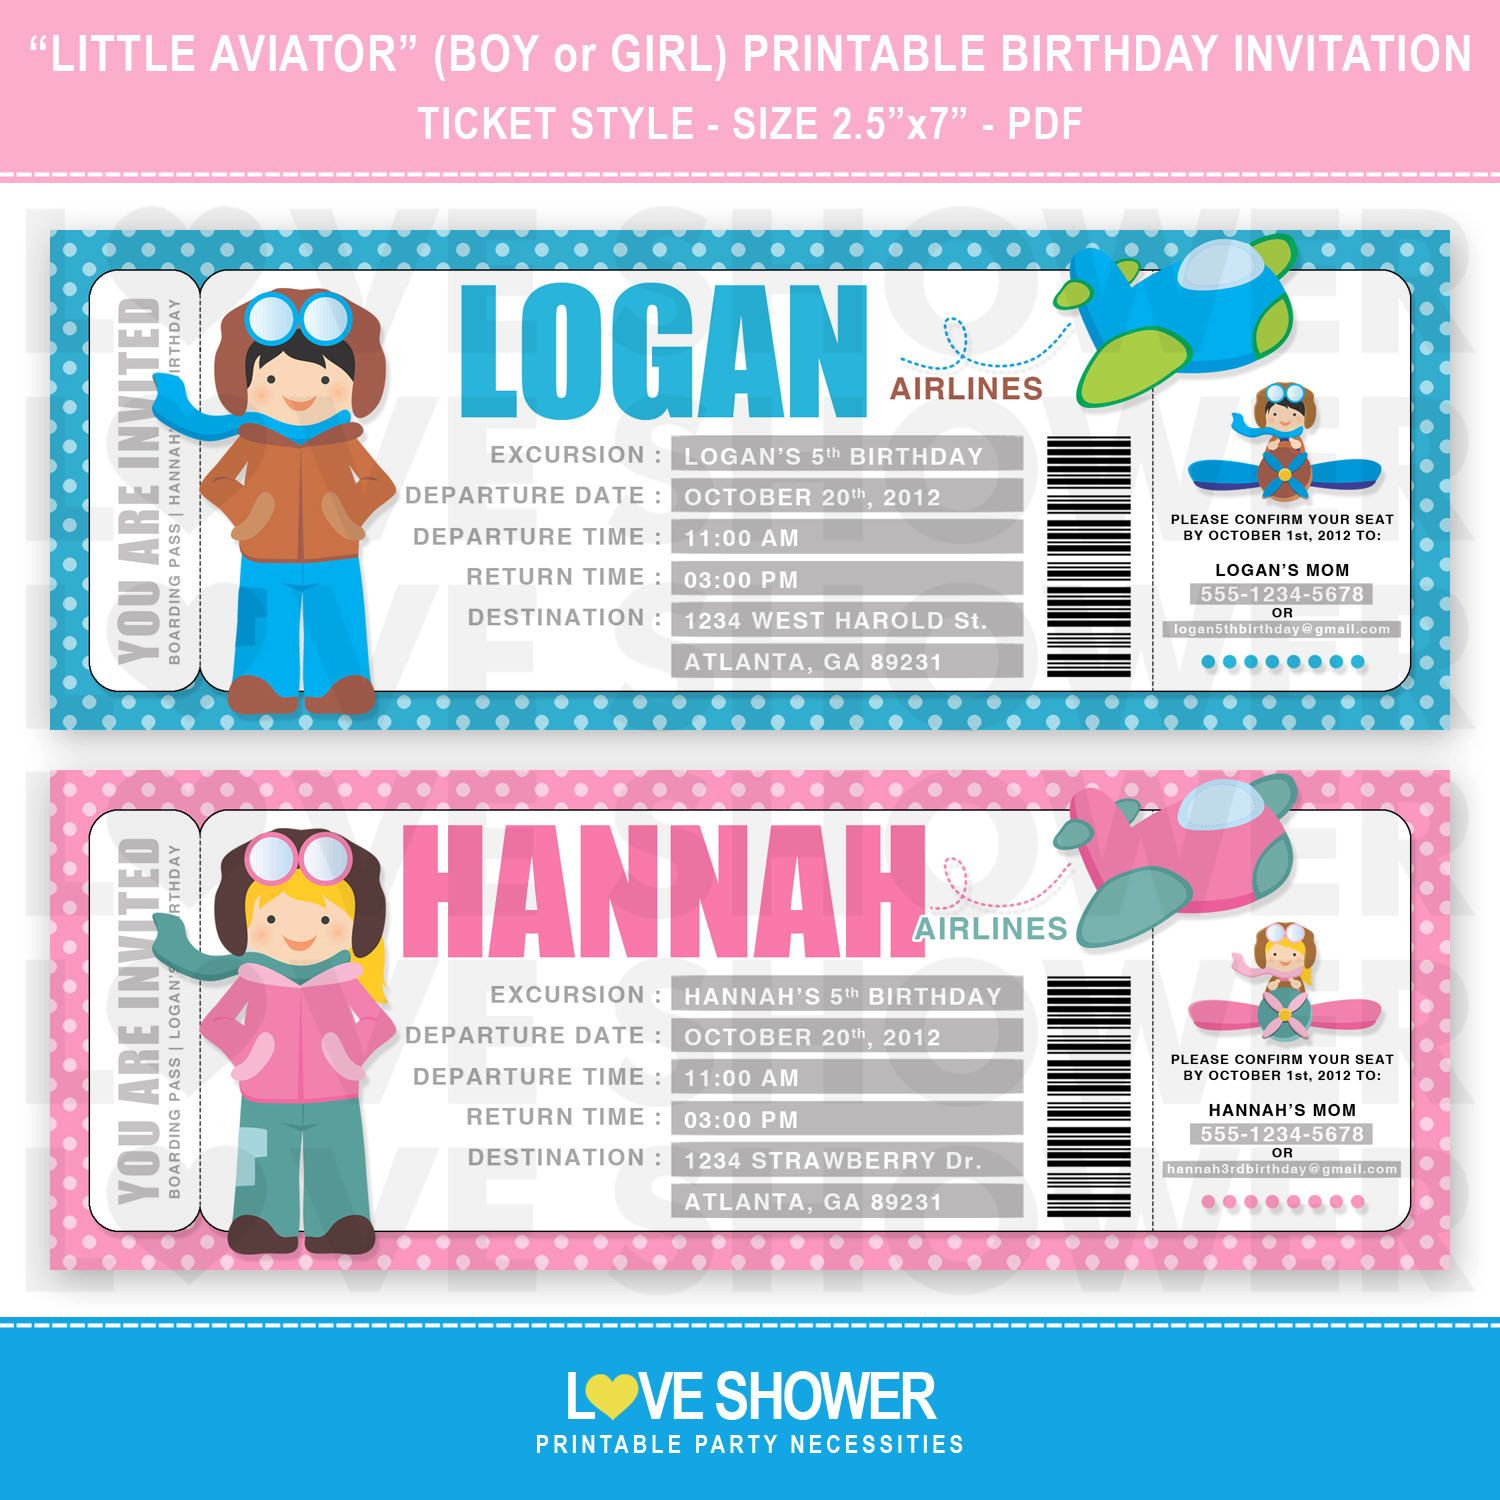 Good Little Aviator   Pilot Boy   Pilot Girl   Airline Ticket Birthday Invitation    Boarding Pass   Printable  Plane Ticket Invitation Template